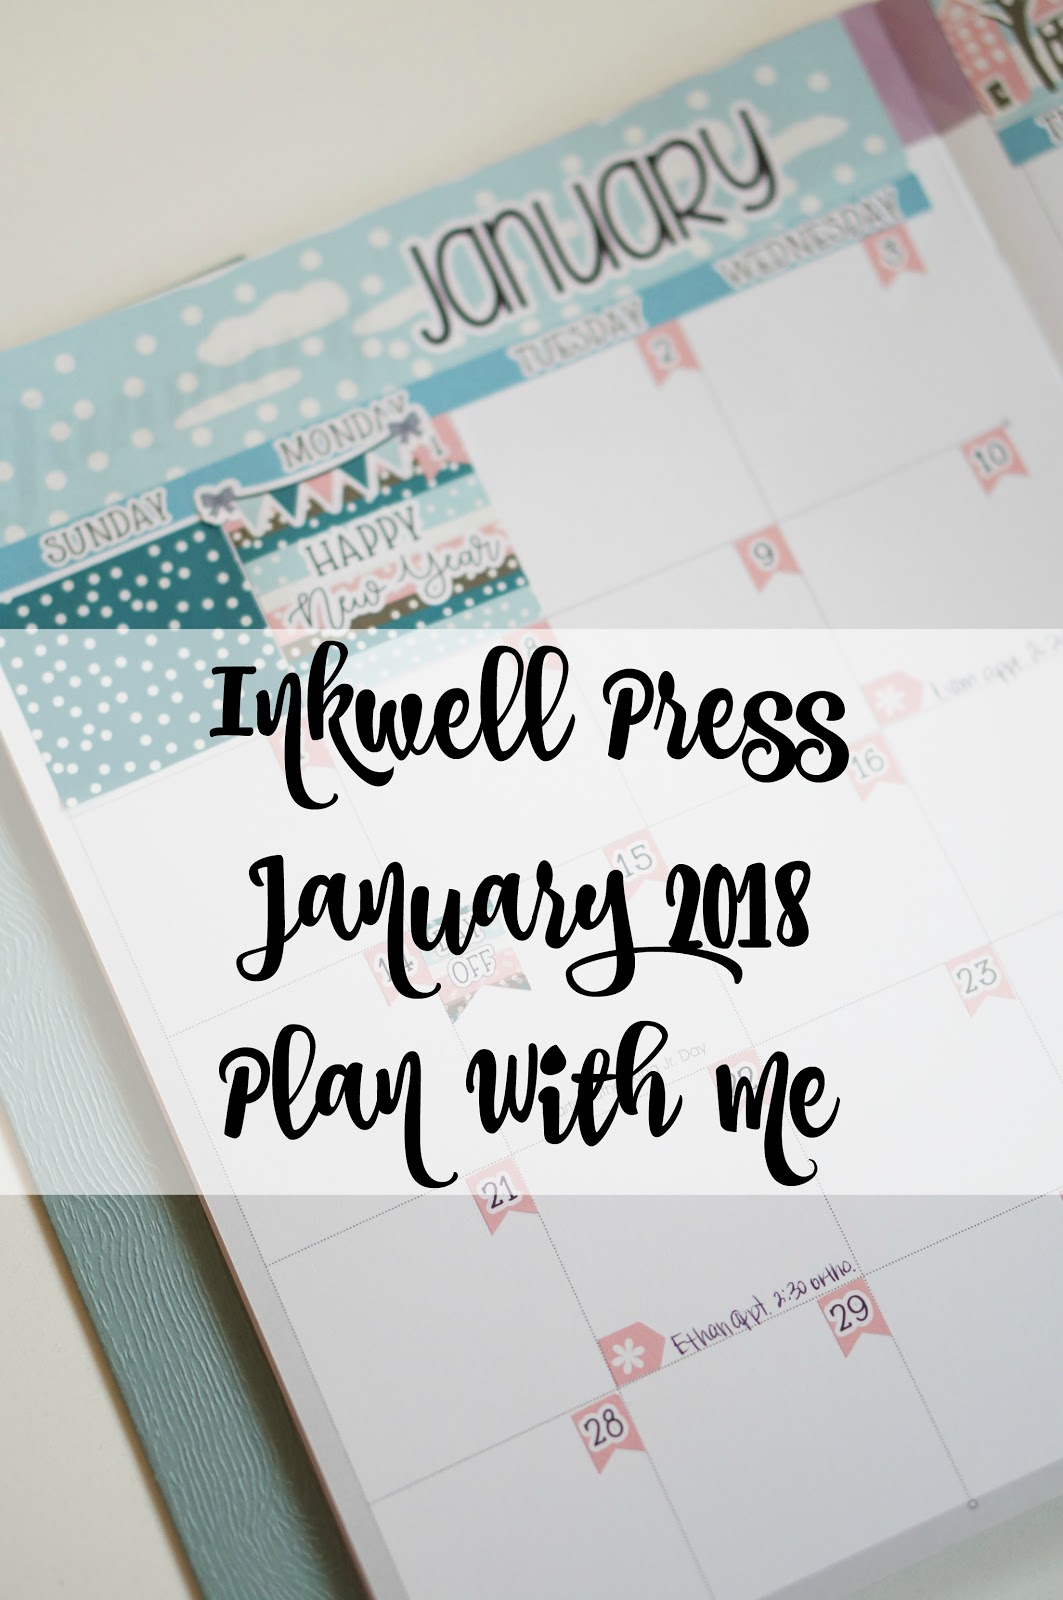 Rebecca Lately Inkwell Press Planner January 2018 Cottage Hill Designs Luckaty Holiday in the Pines